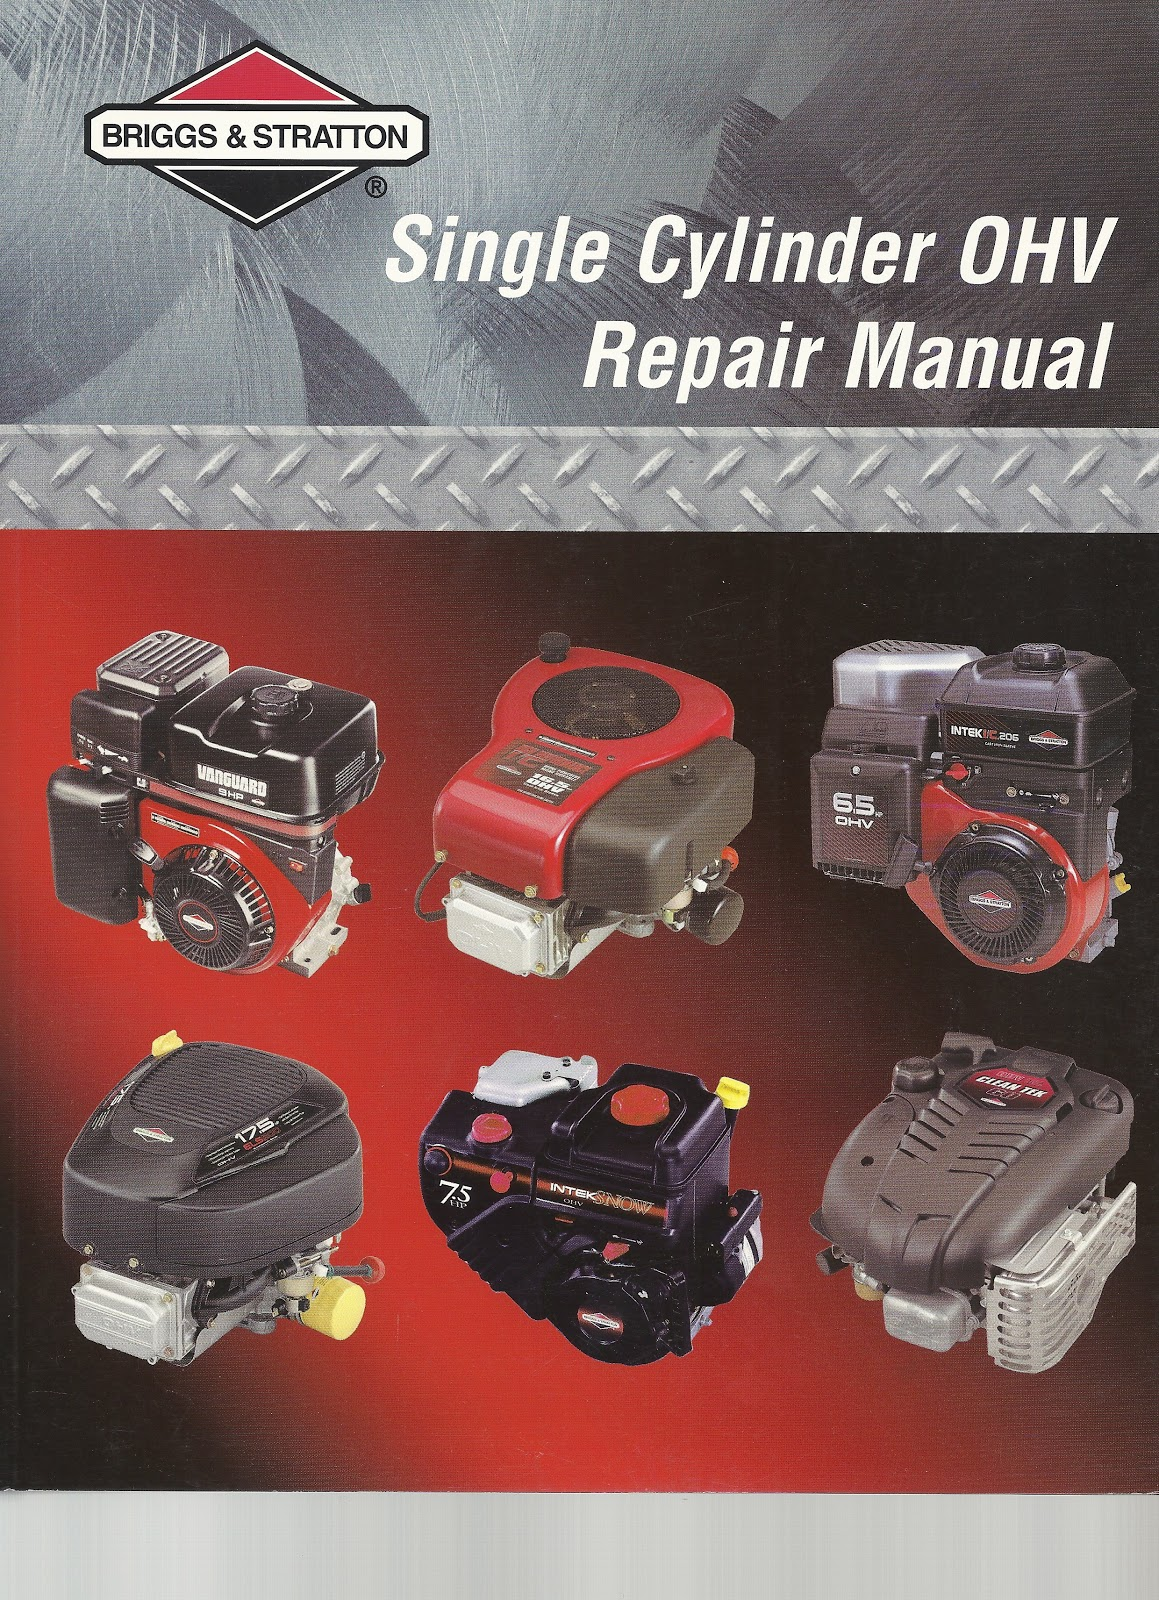 Briggs & Stratton 5 HP Troubleshooting & Repair Manual